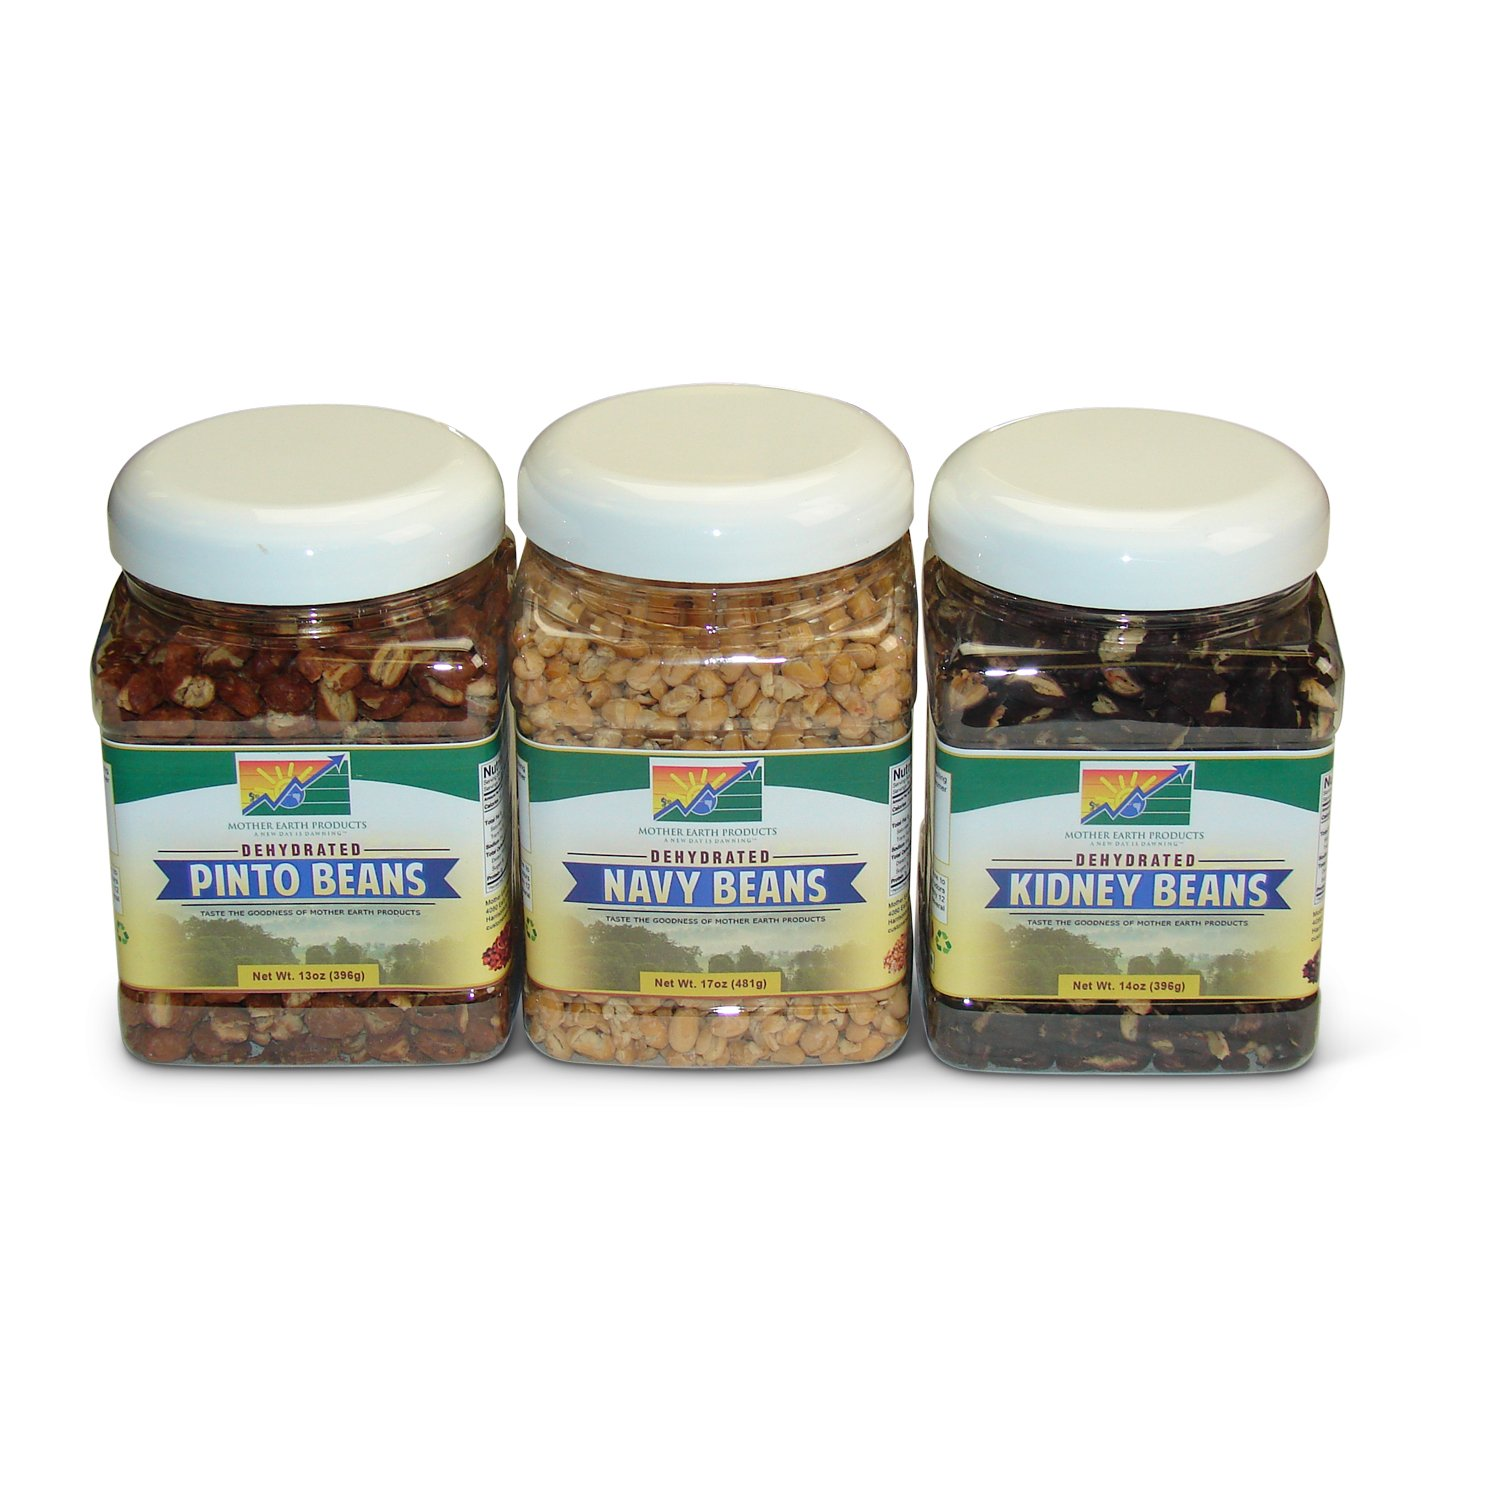 Mother Earth Products Bean Value Medley: Pinto Beans, Navy Beans, and Red Kidney Beans by Mother Earth Products